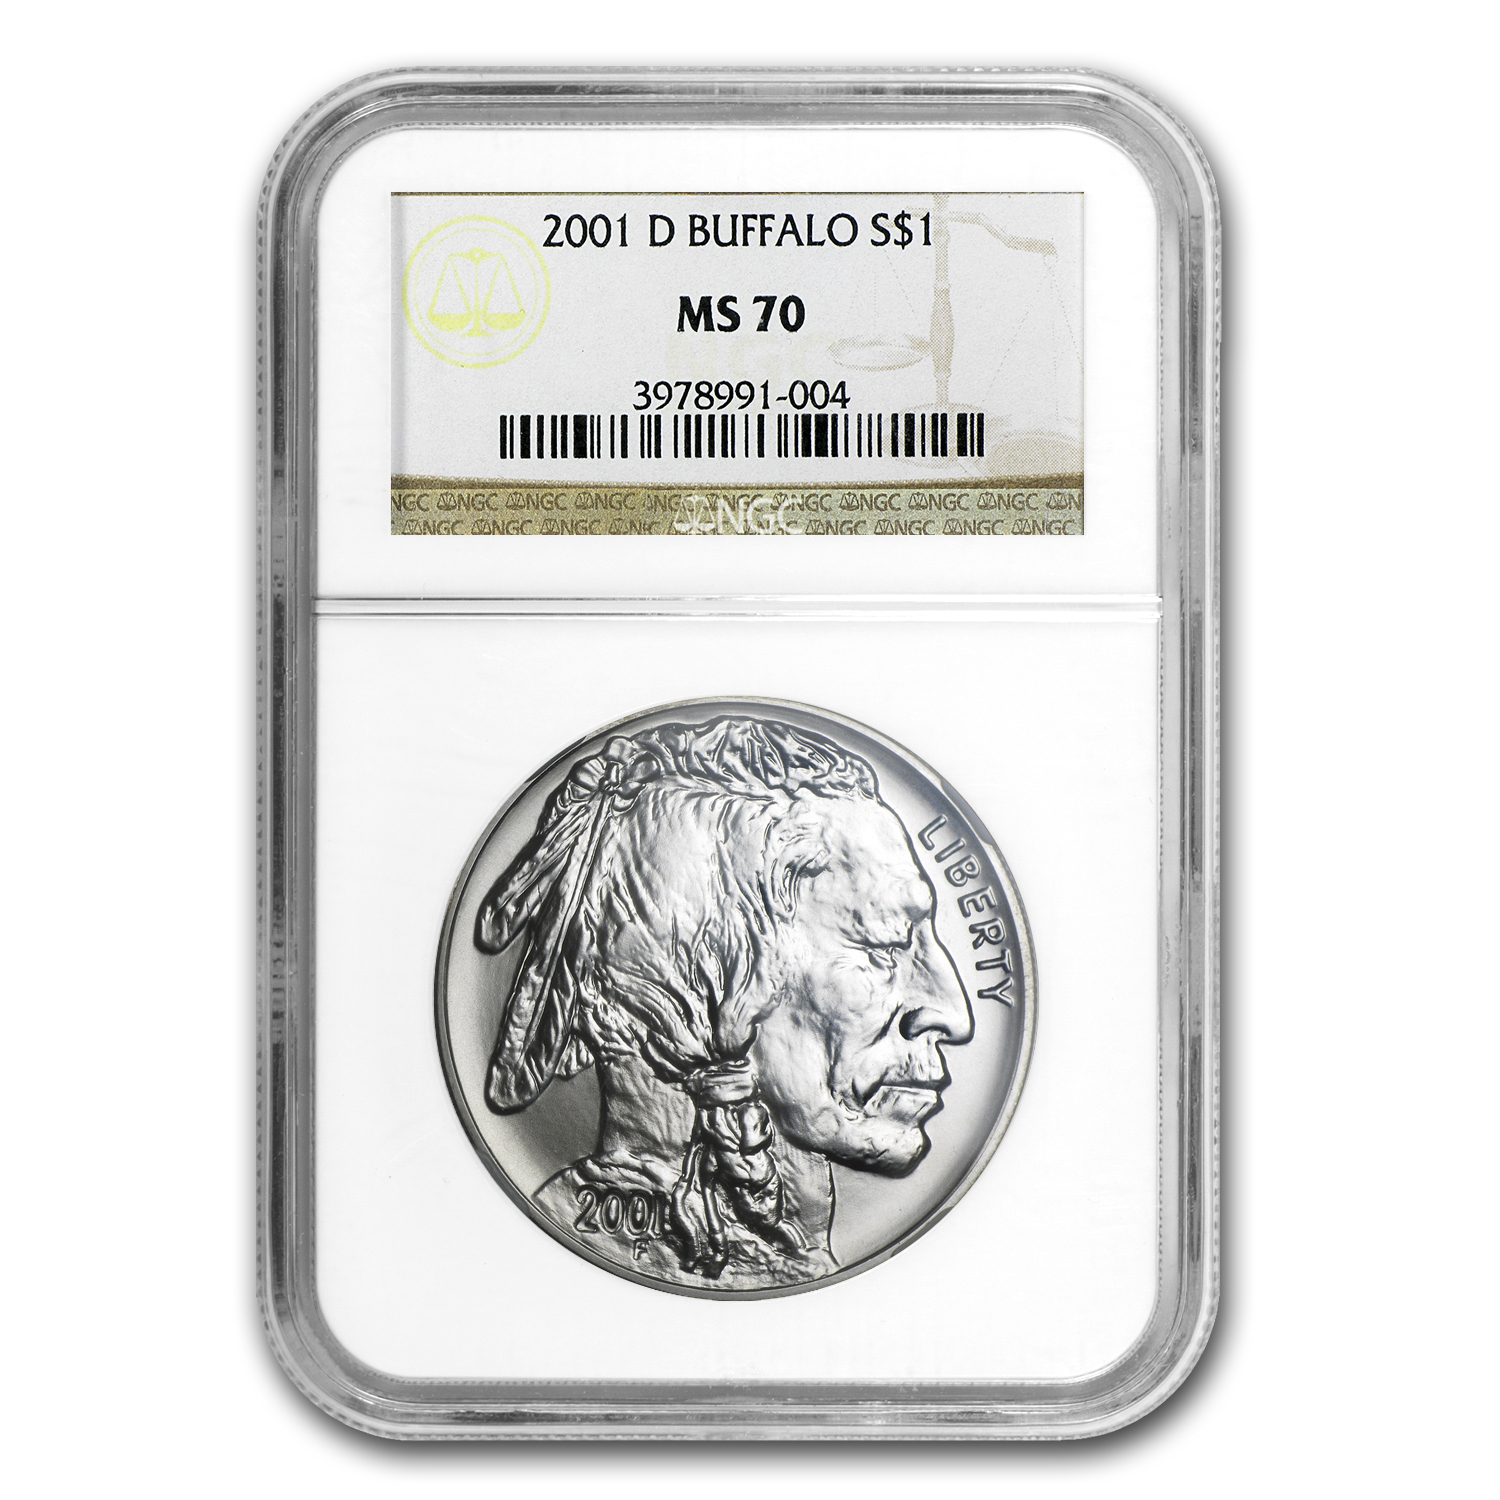 2001-D Buffalo $1 Silver Commemorative - MS-70 NGC